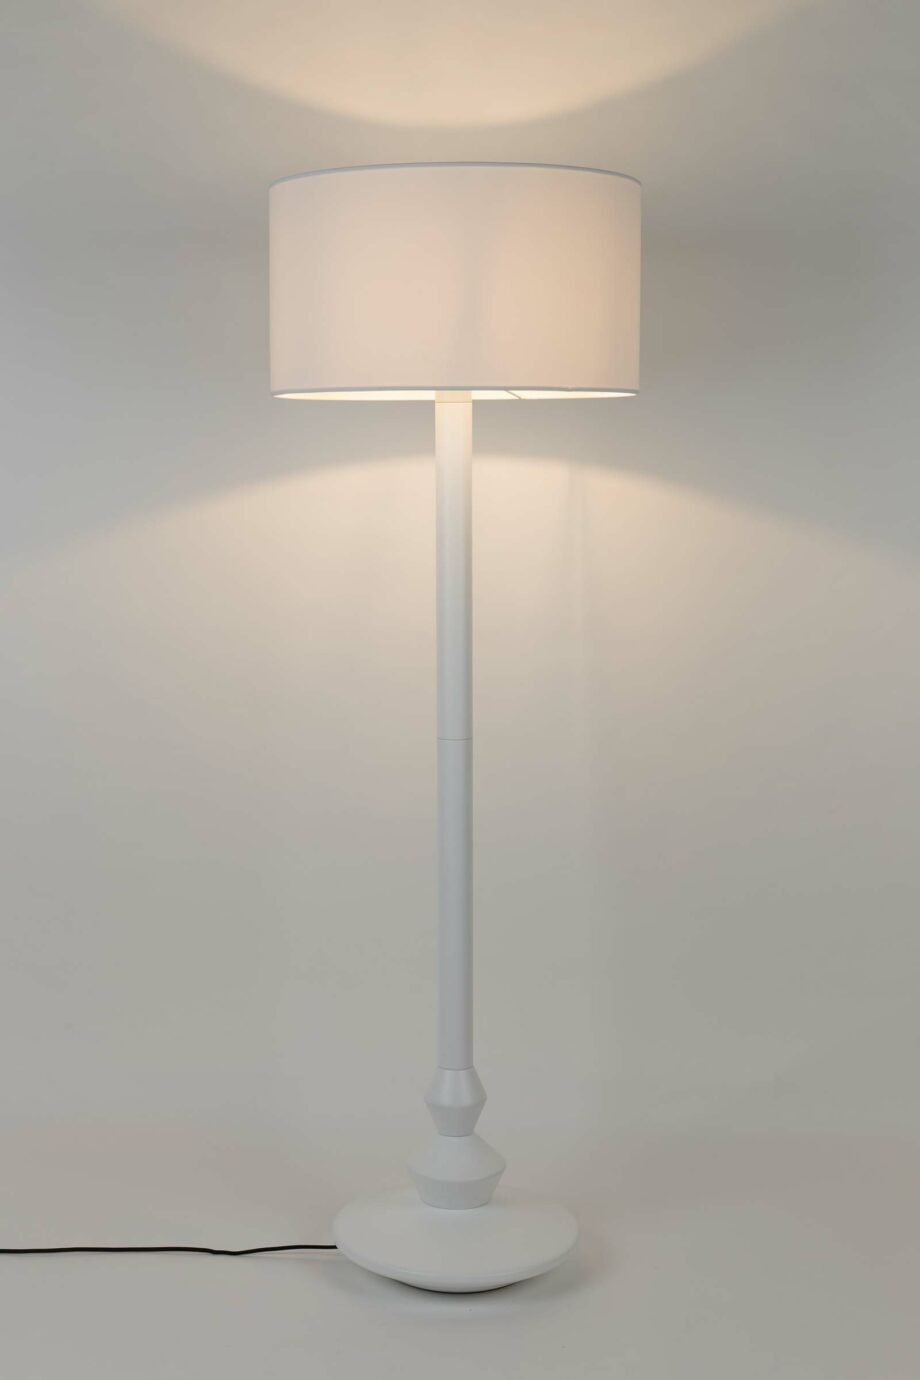 Finlay vloerlamp Zuiver wit 2